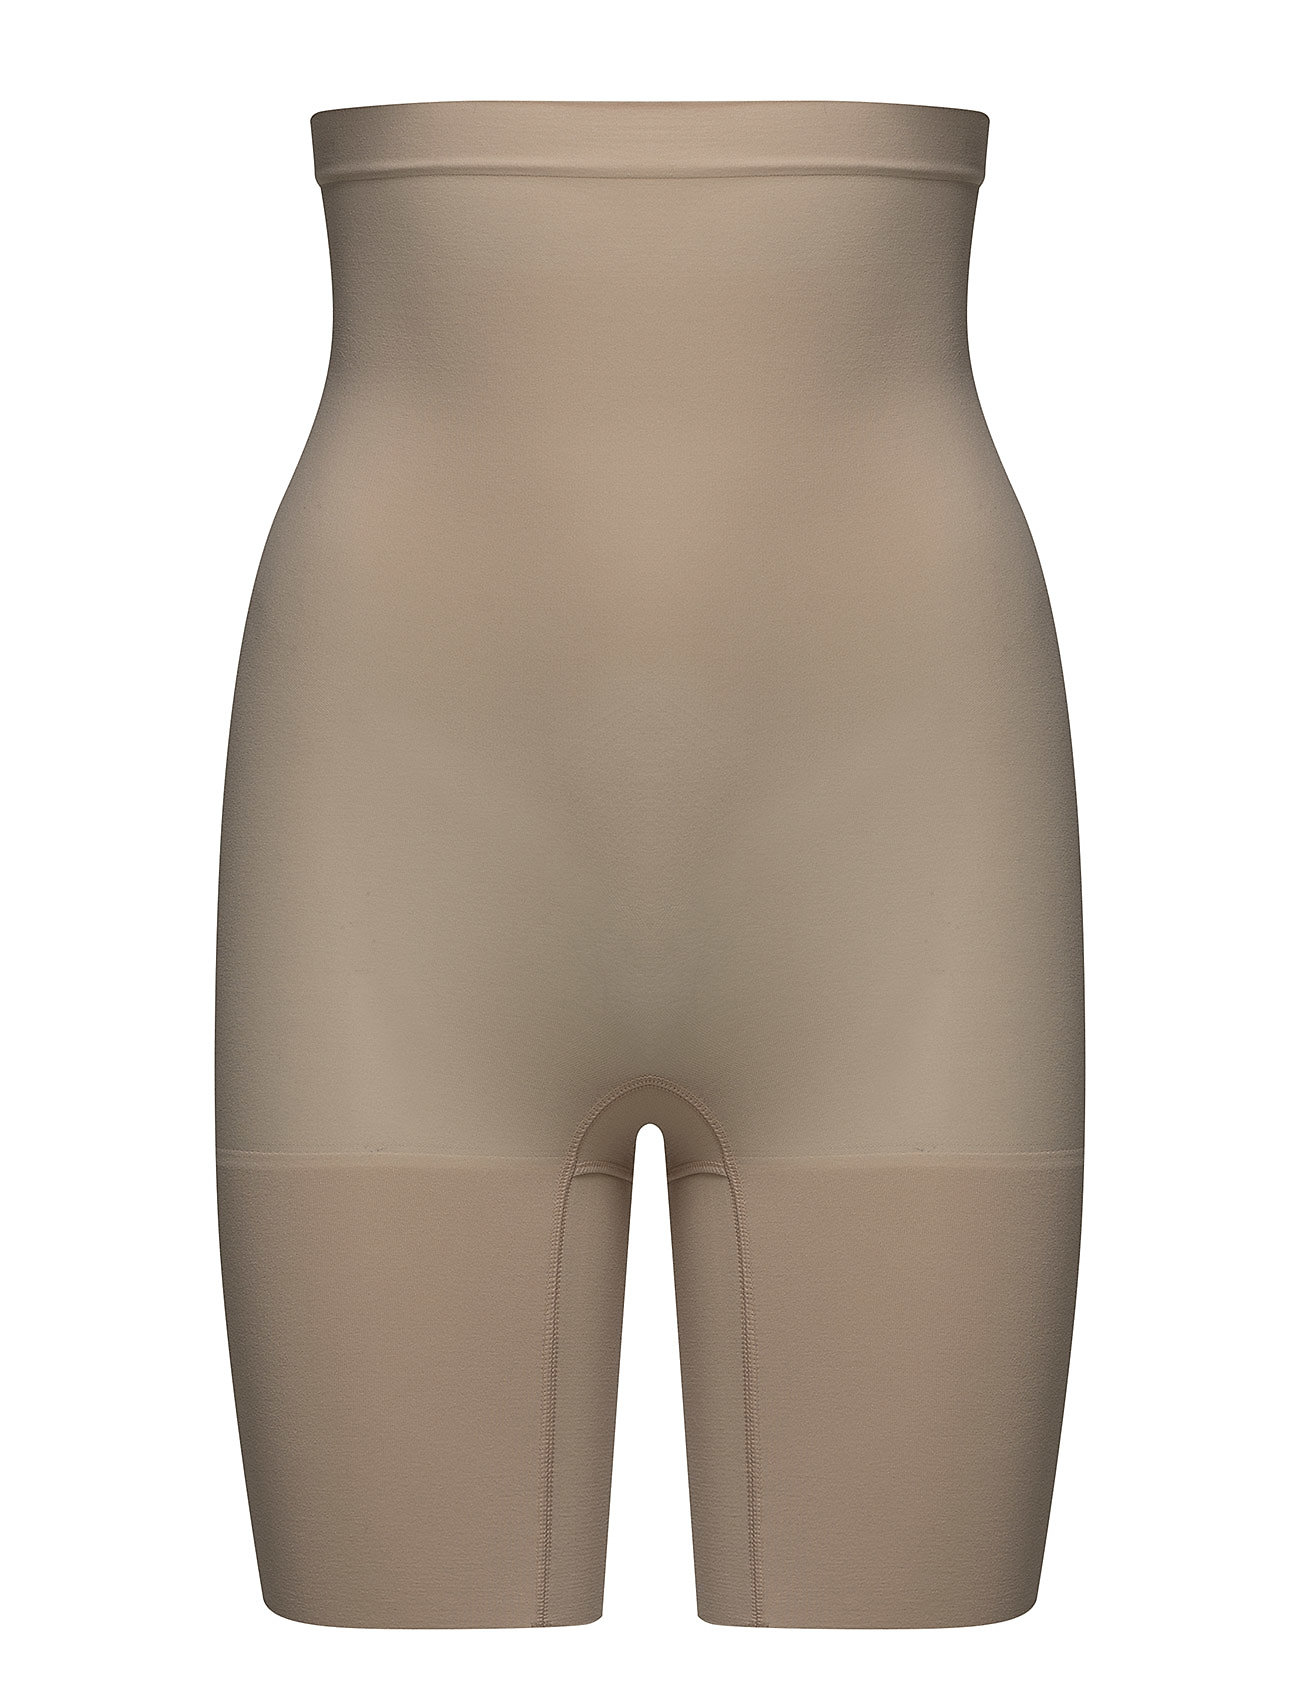 Spanx HIGHER SHORT - SOFT NUDE